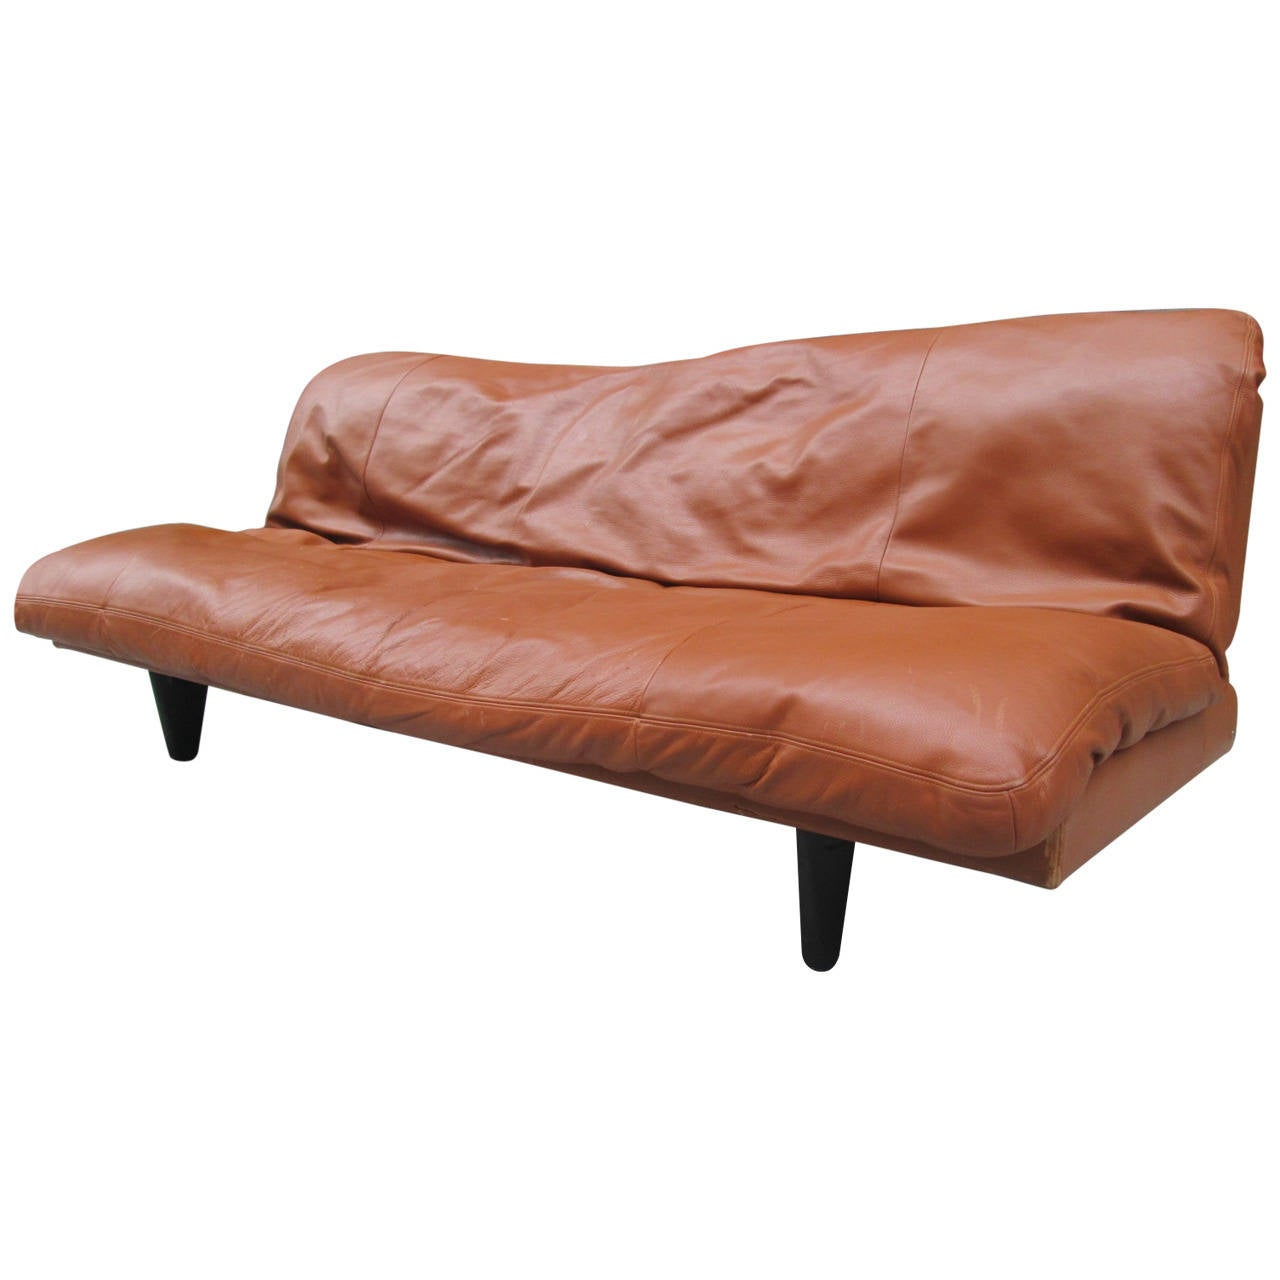 de sede sleeper sofa simple sleep single lounge chair bed leather convertible by for sale at 1stdibs